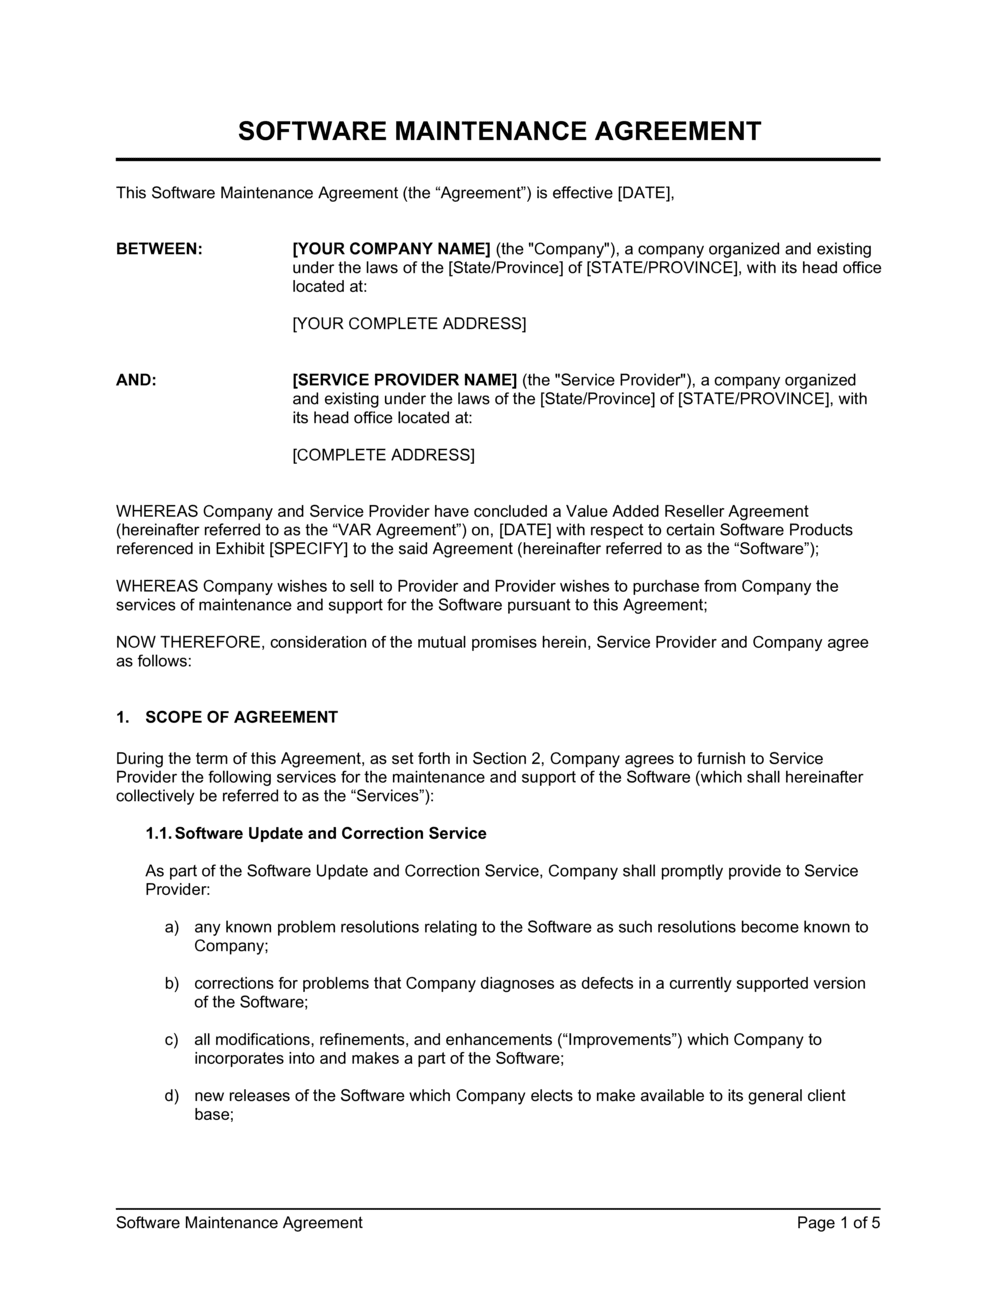 Business-in-a-Box's Software Maintenance Agreement VAR Template